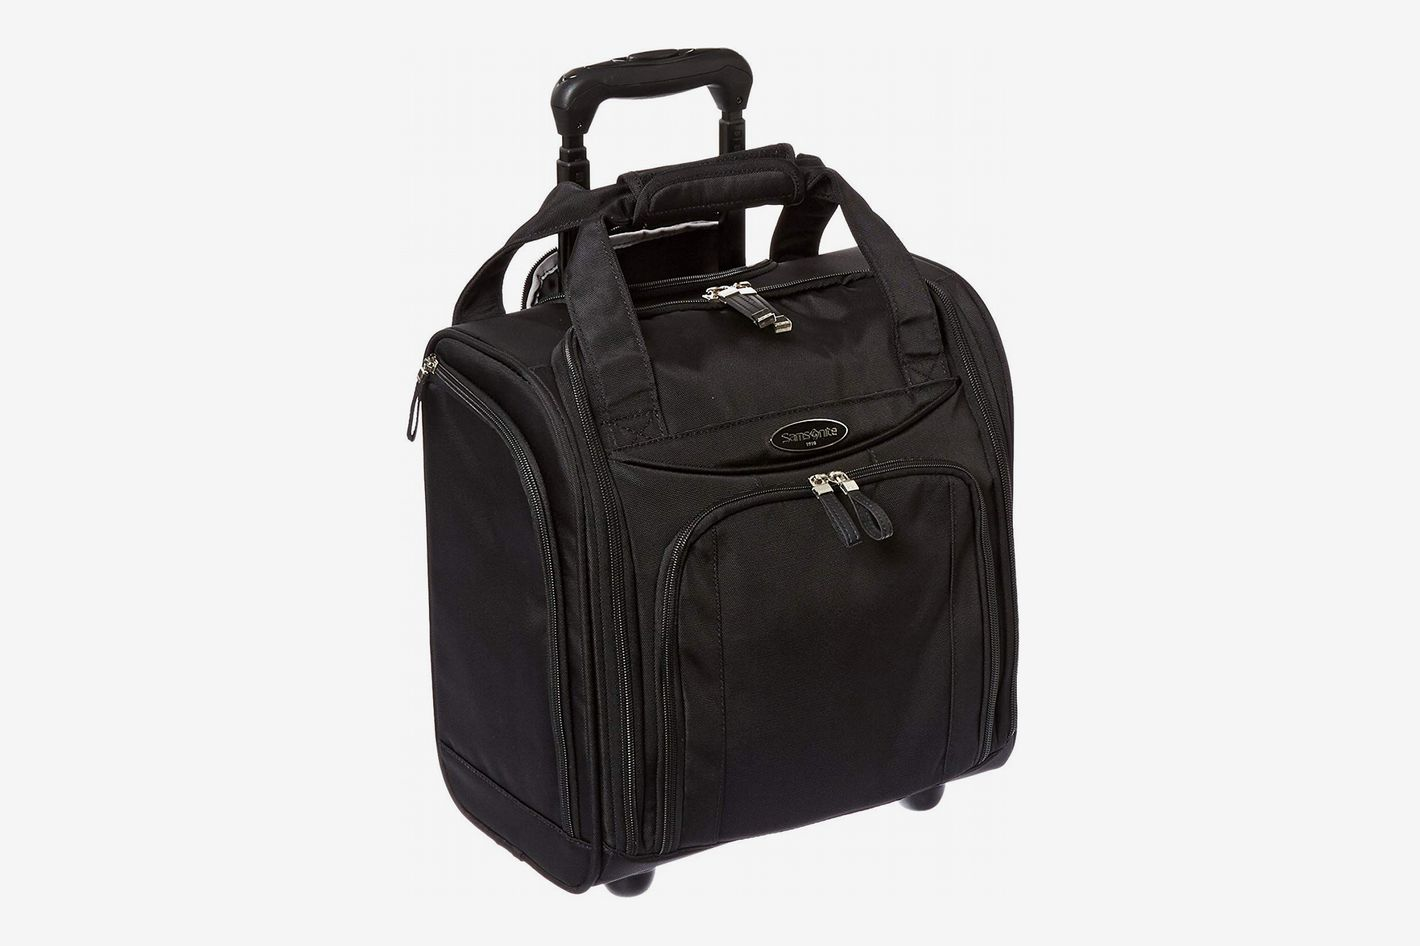 4bac1de5eb1f 21 Best Rolling Suitcases and Luggage Under $250: 2019